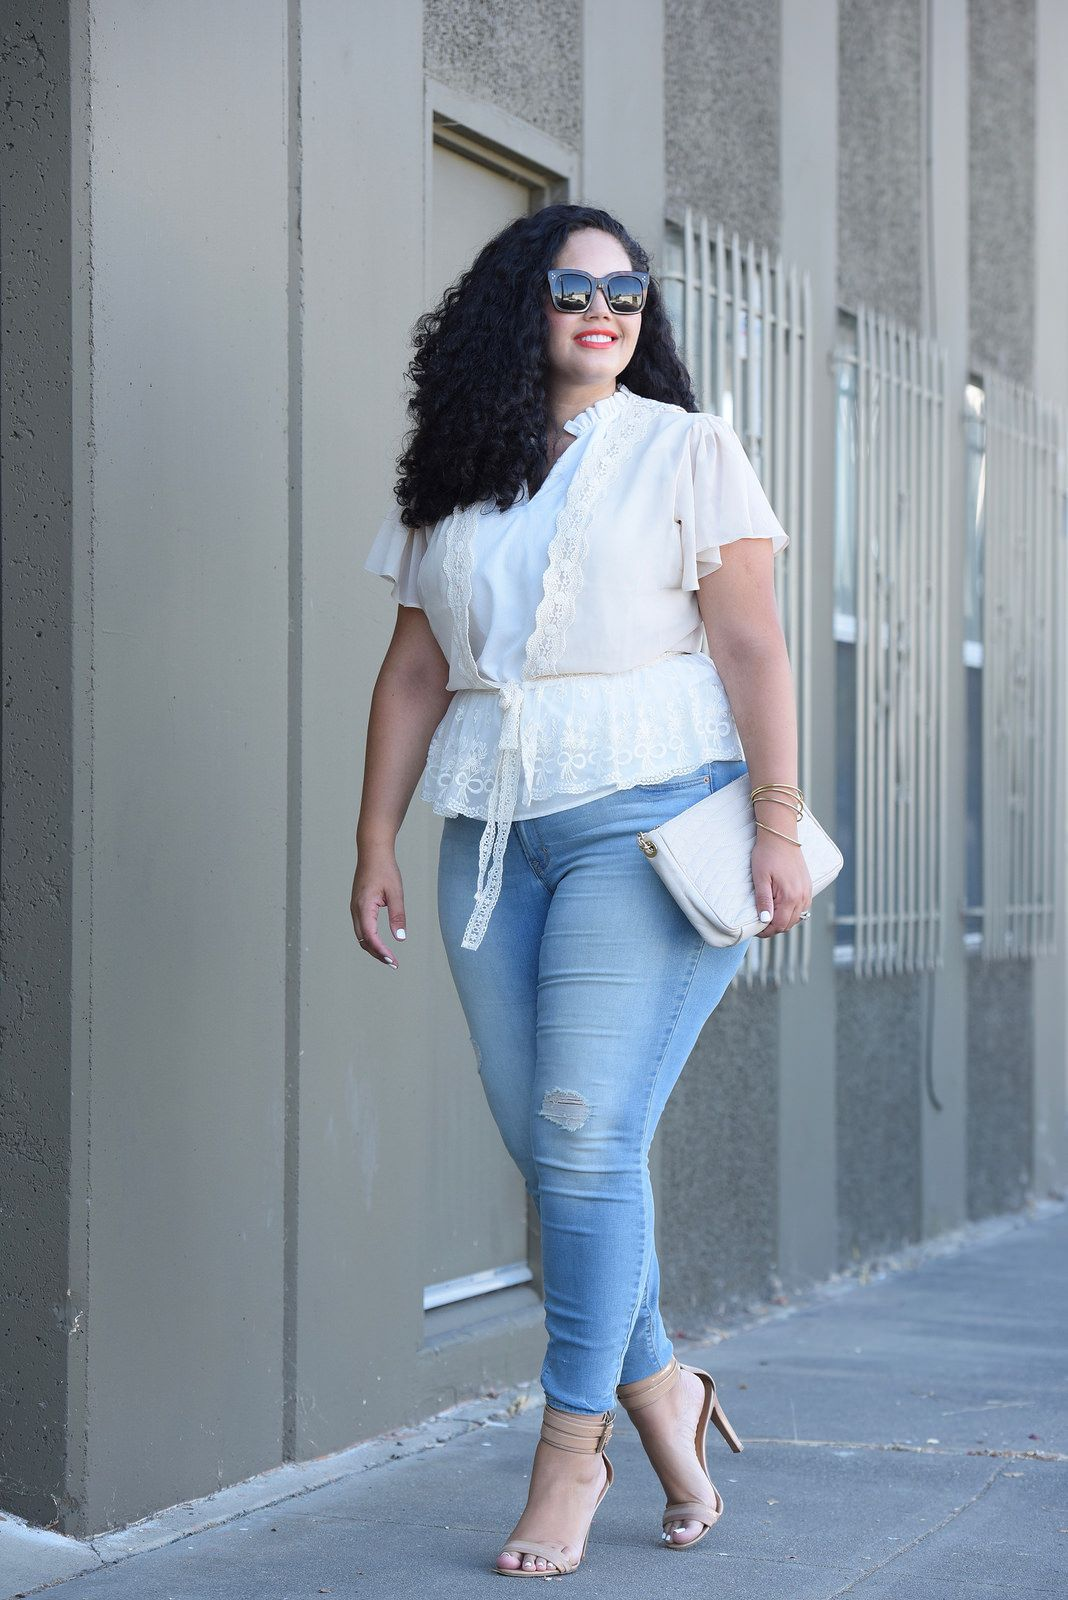 fe9a38b5757c7 Tanesha Awasthi (also known as Girl With Curves) wearing plus size skinny  jeans